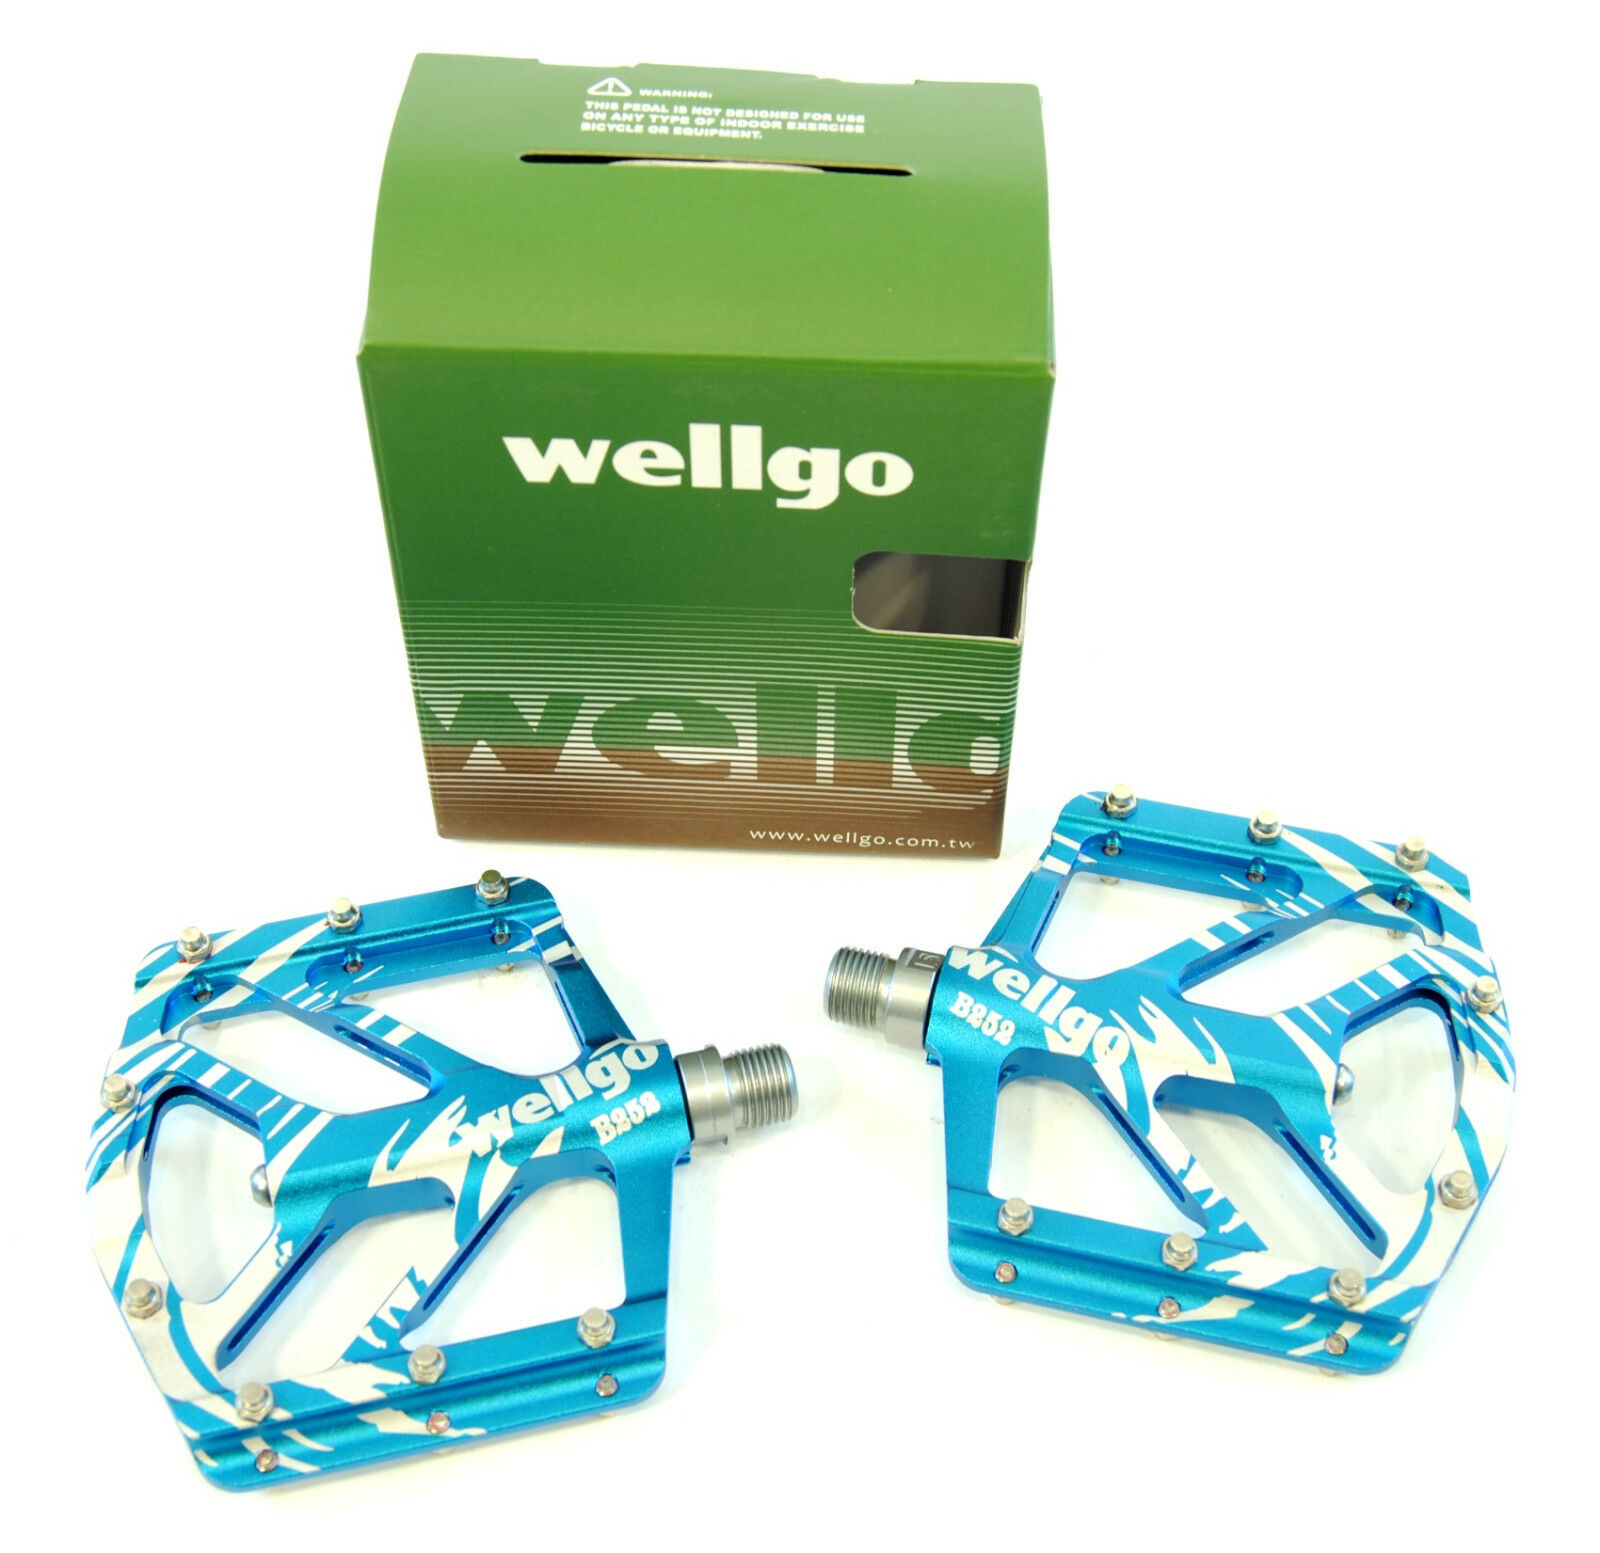 Wellgo B252 Mag Magnesium Low Profile Mountain Bike Pedals, bluee, 155g